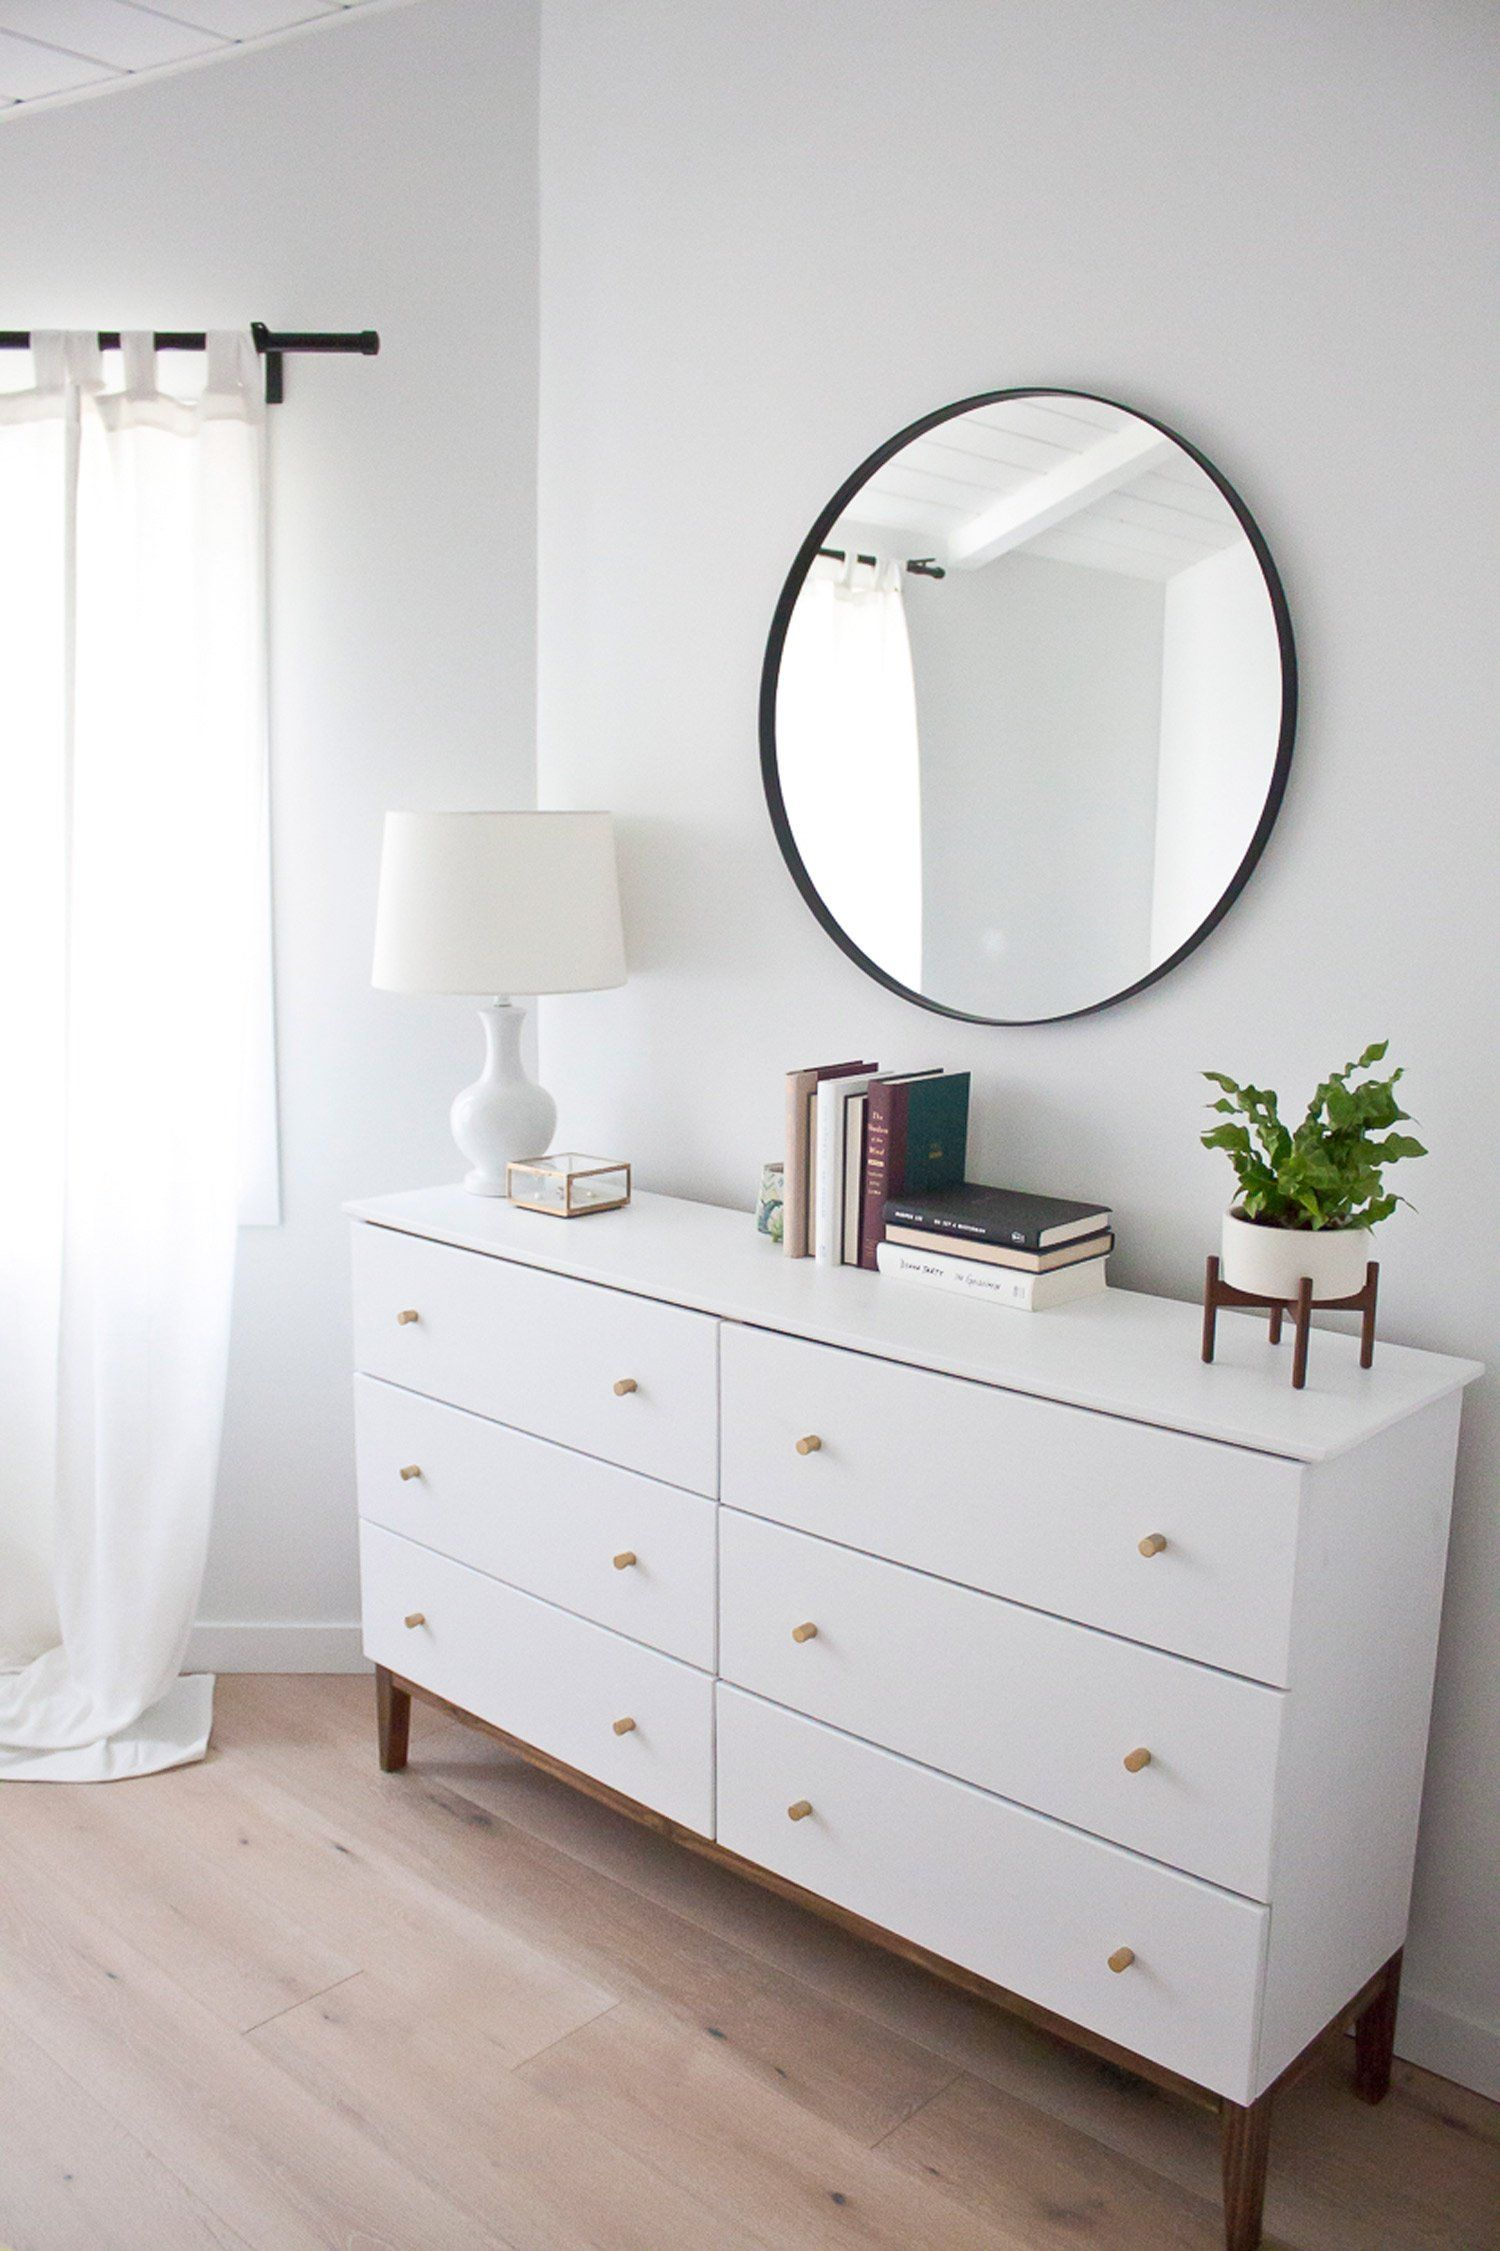 Ikea Einrichtungsideen Schlafzimmer How To Make An Ikea Dresser Look Like A Midcentury Splurge